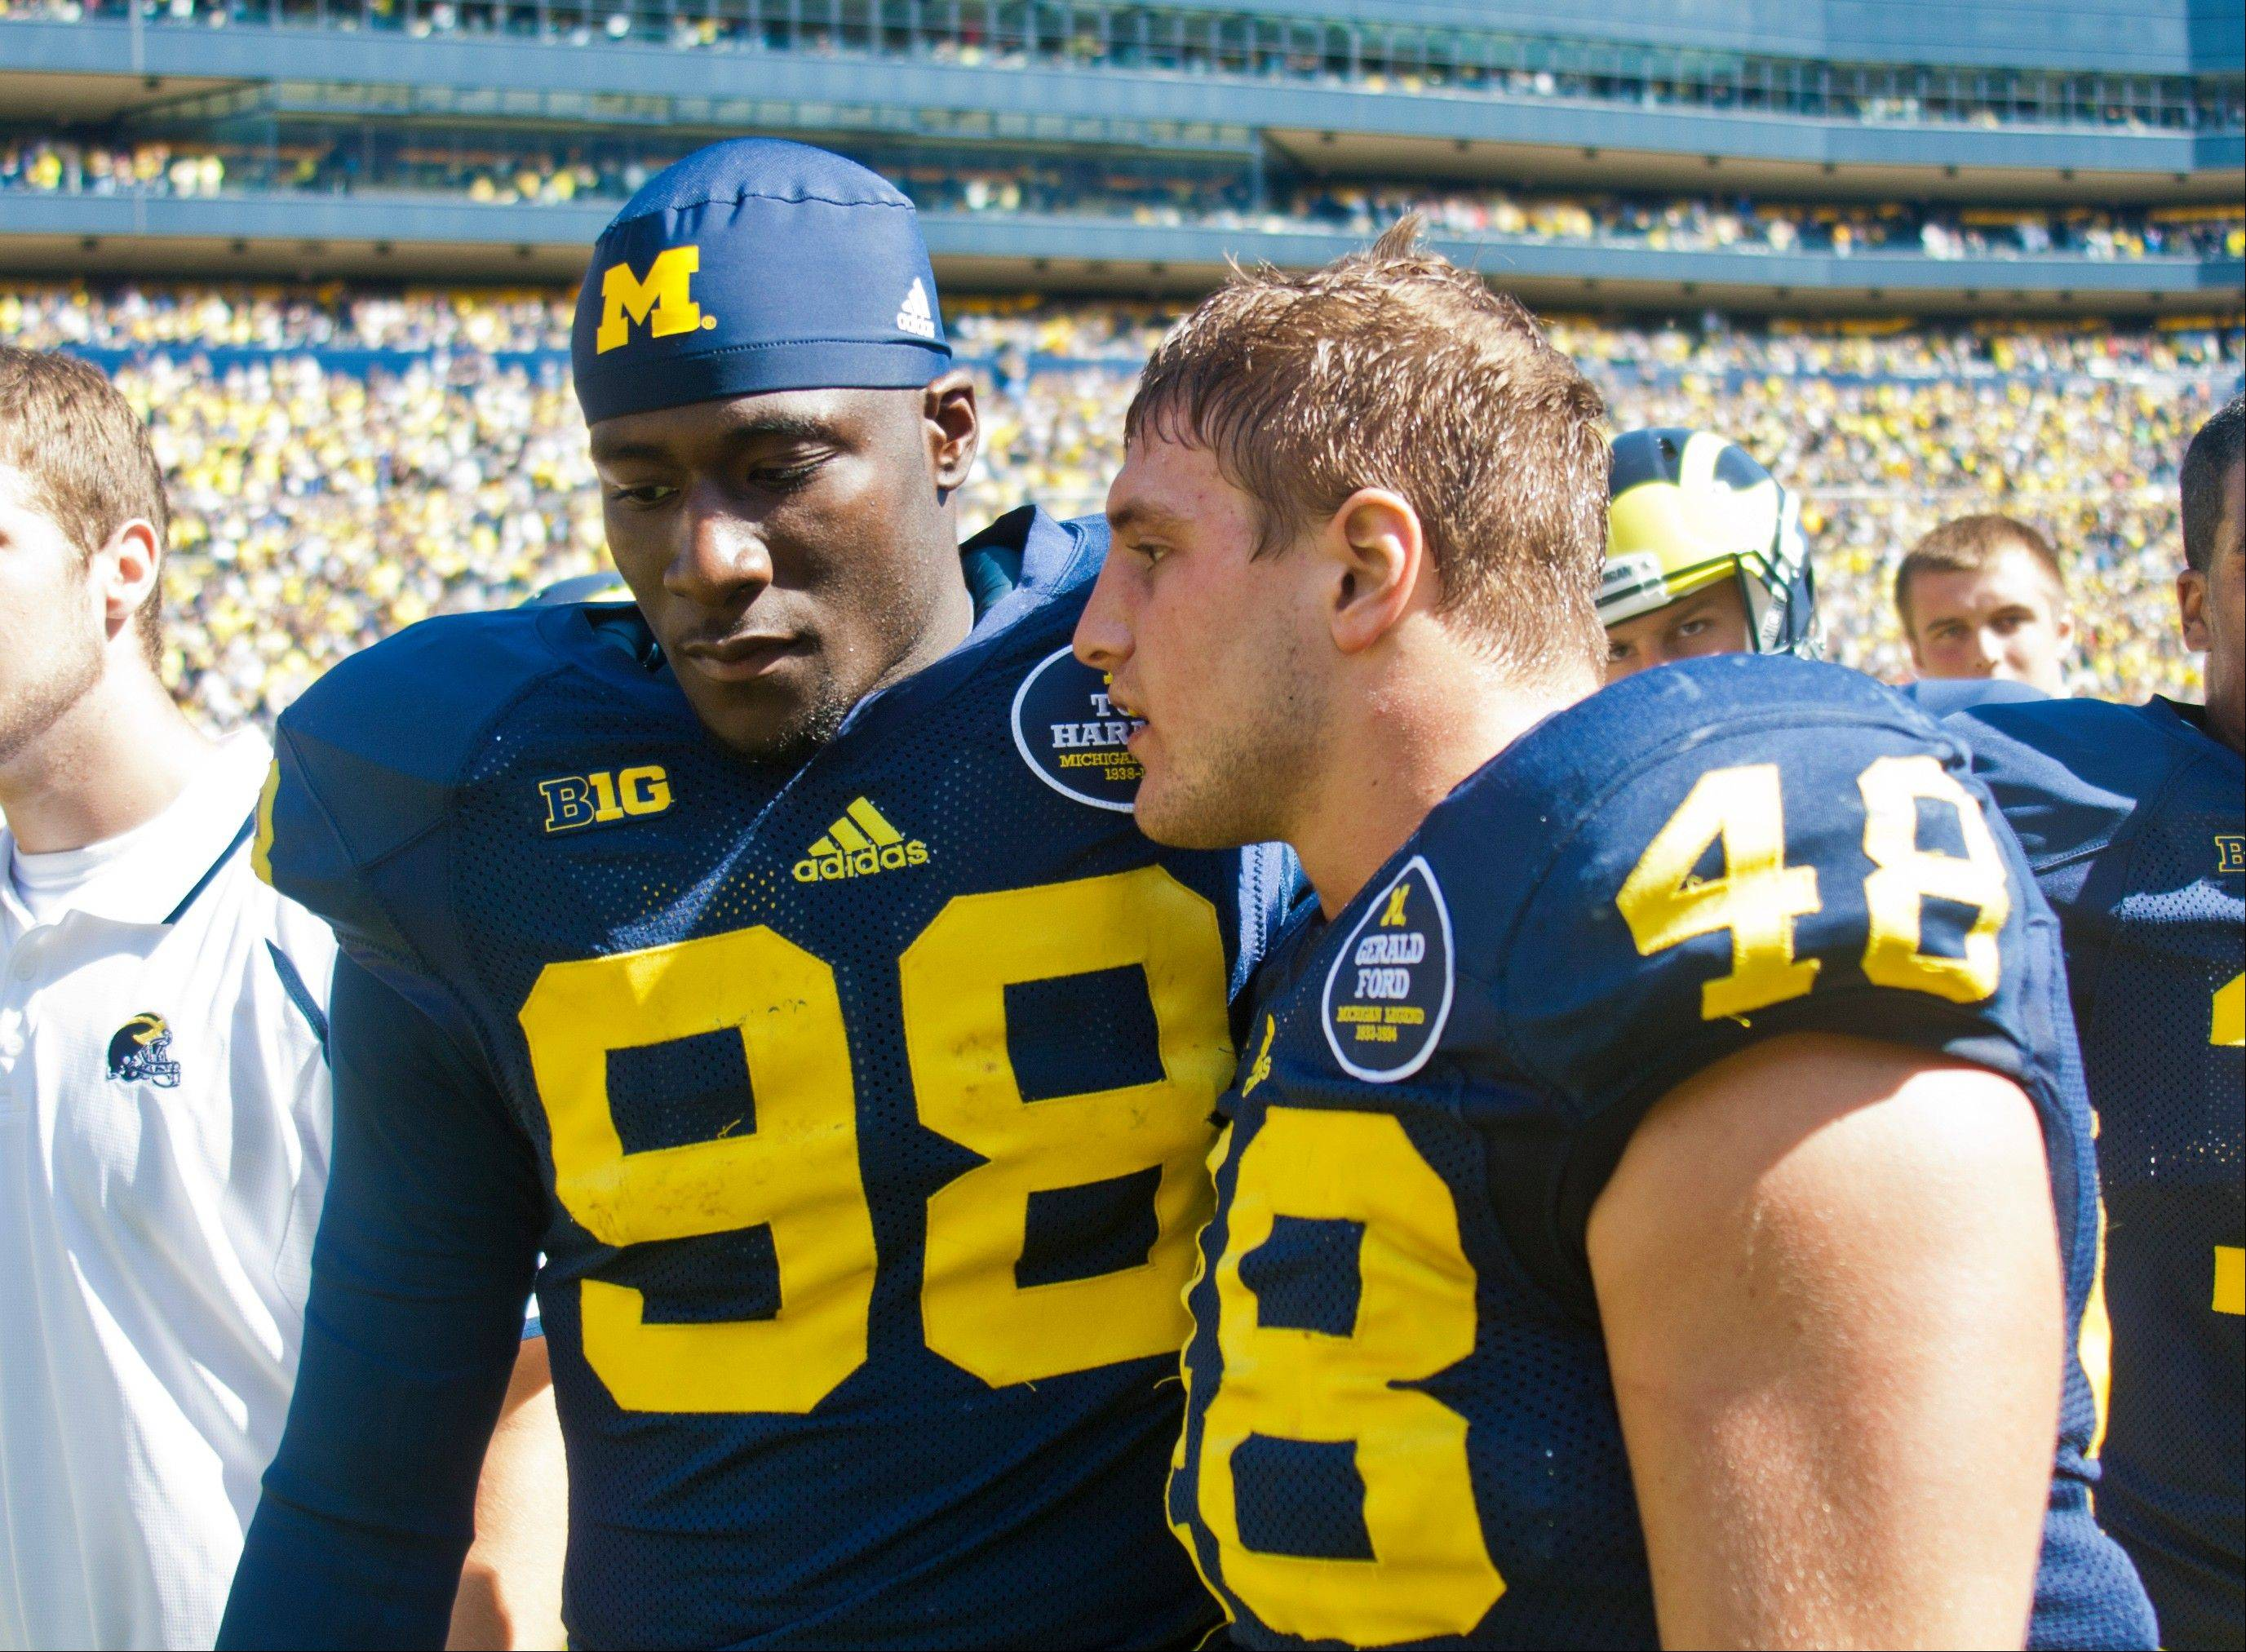 Michigan quarterback Devin Gardner (98) has words with linebacker Desmond Morgan (48) after an NCAA college football game against Akrain in Ann Arbor, Mich., Saturday, Sept. 14, 2013. Michigan won 28-24. Gardner had 3 interceptions and 1 lost fumble.